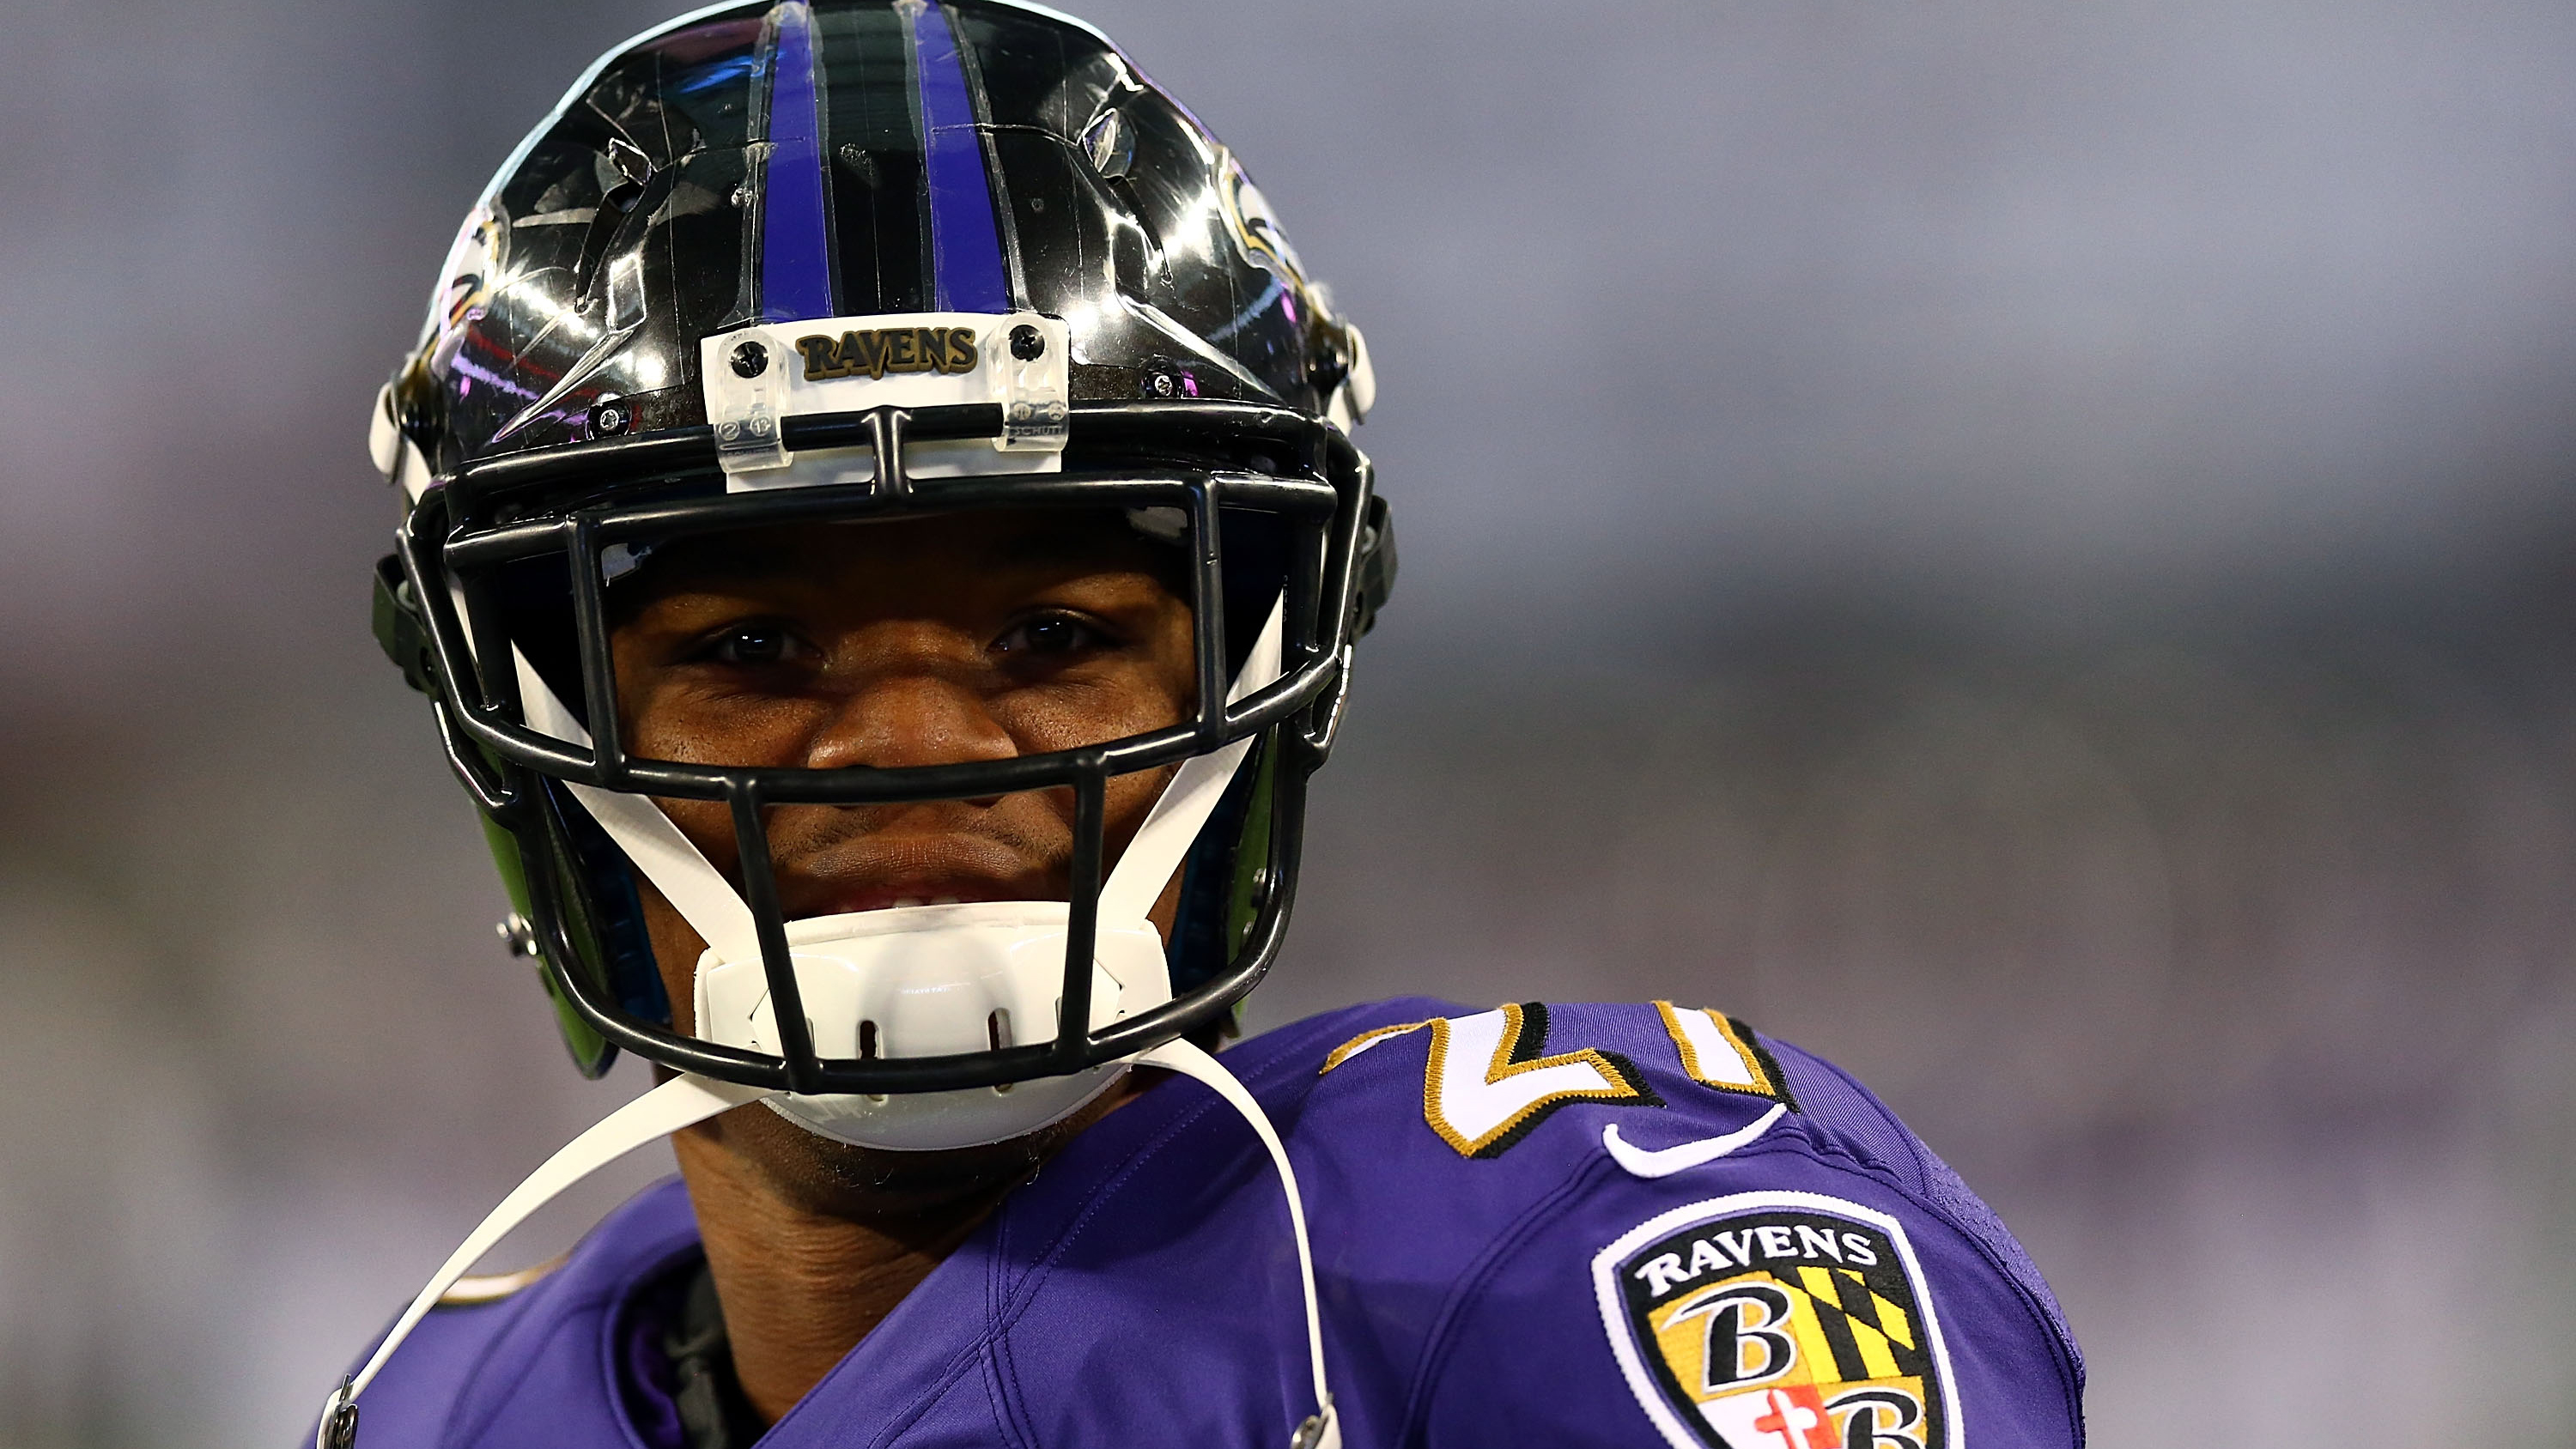 Roger Goodell under fire for handling of Ray Rice domestic violence incident